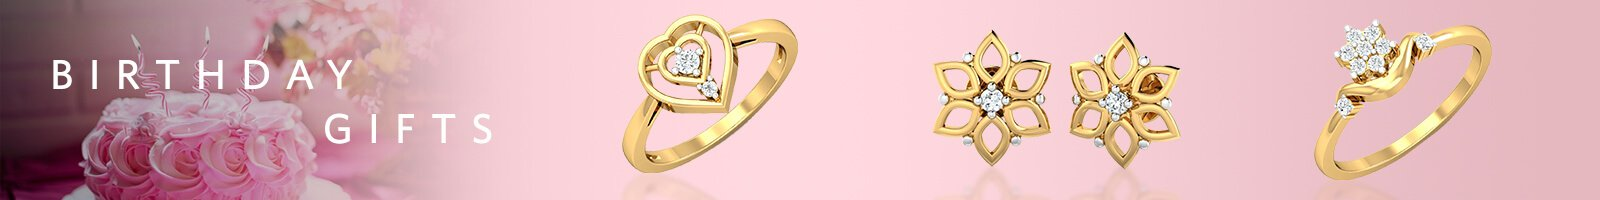 Buy Gold Gifts For Birthday Online Pn Gadgil Jewellers